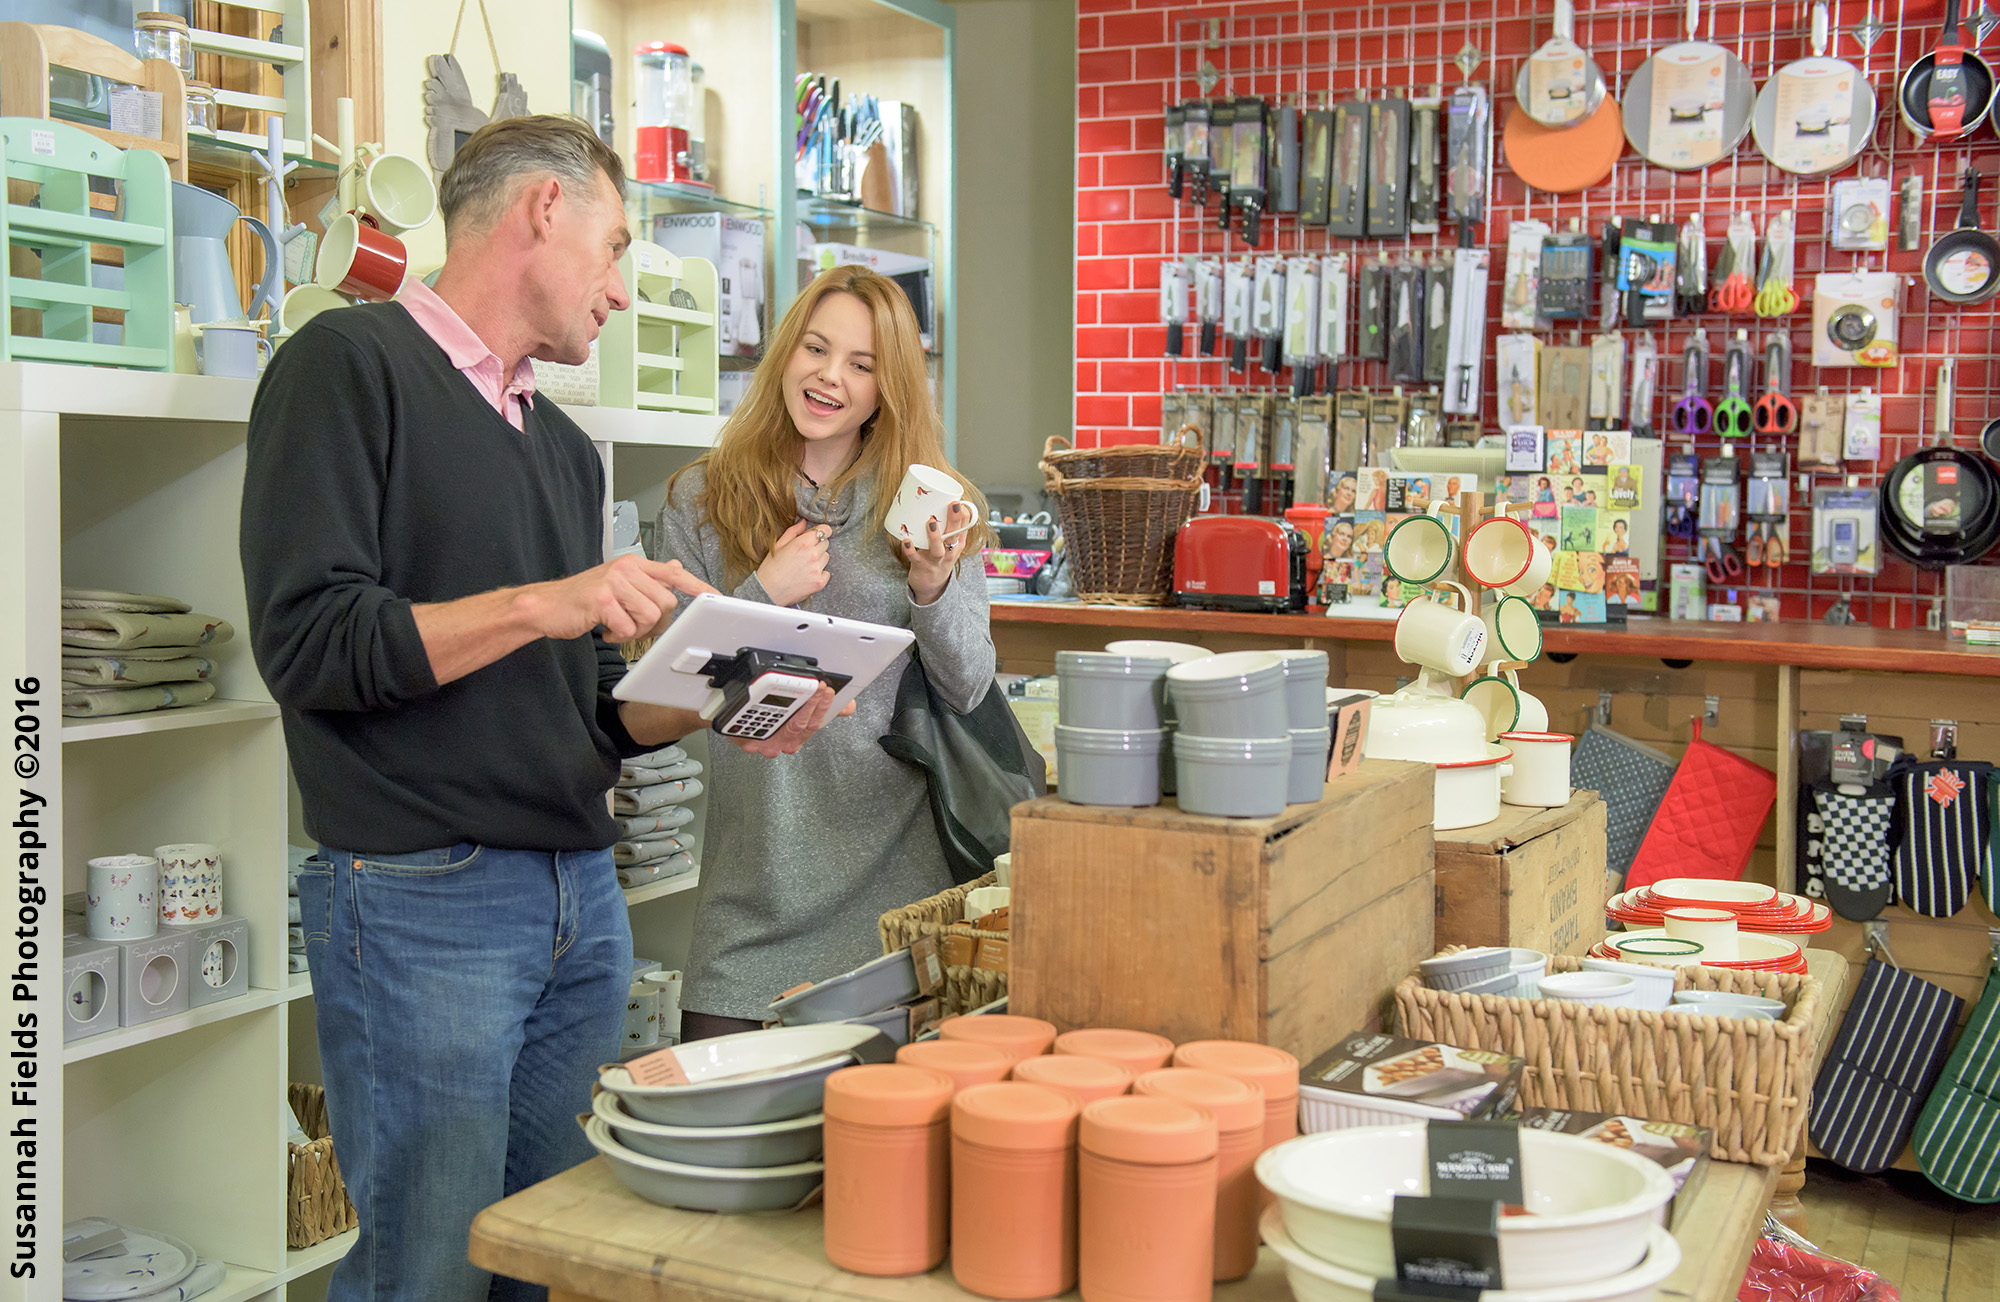 My Business Hub Commercial Photography for Worldpay with Ed Webster at The Scullery, Muswell Hill